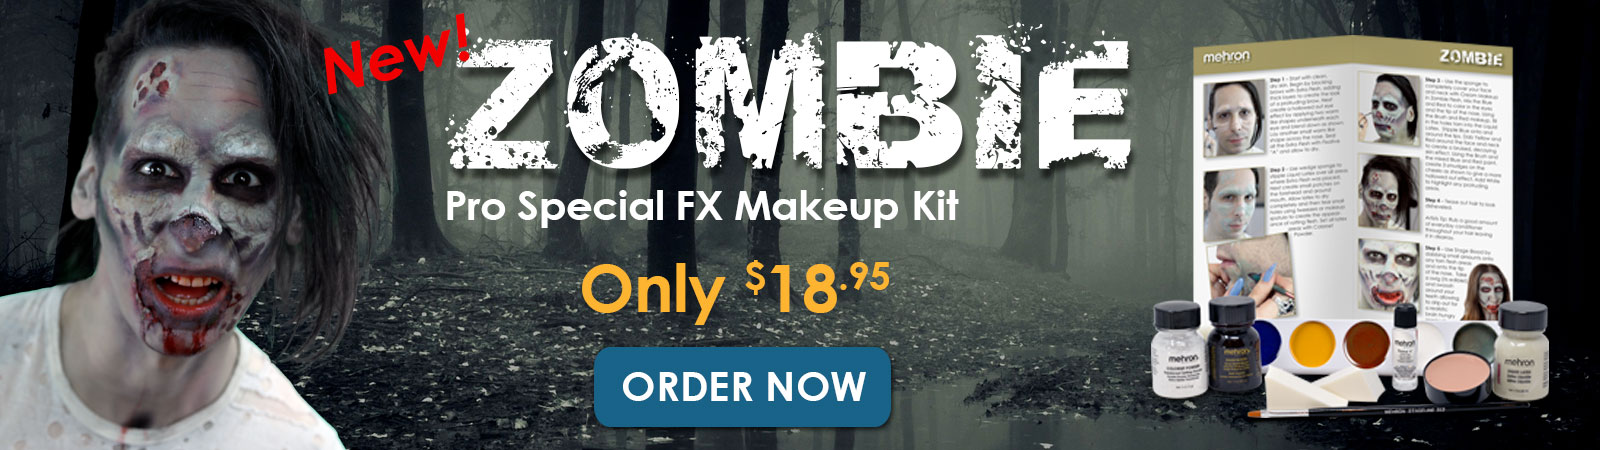 New Mehron Zombie kit